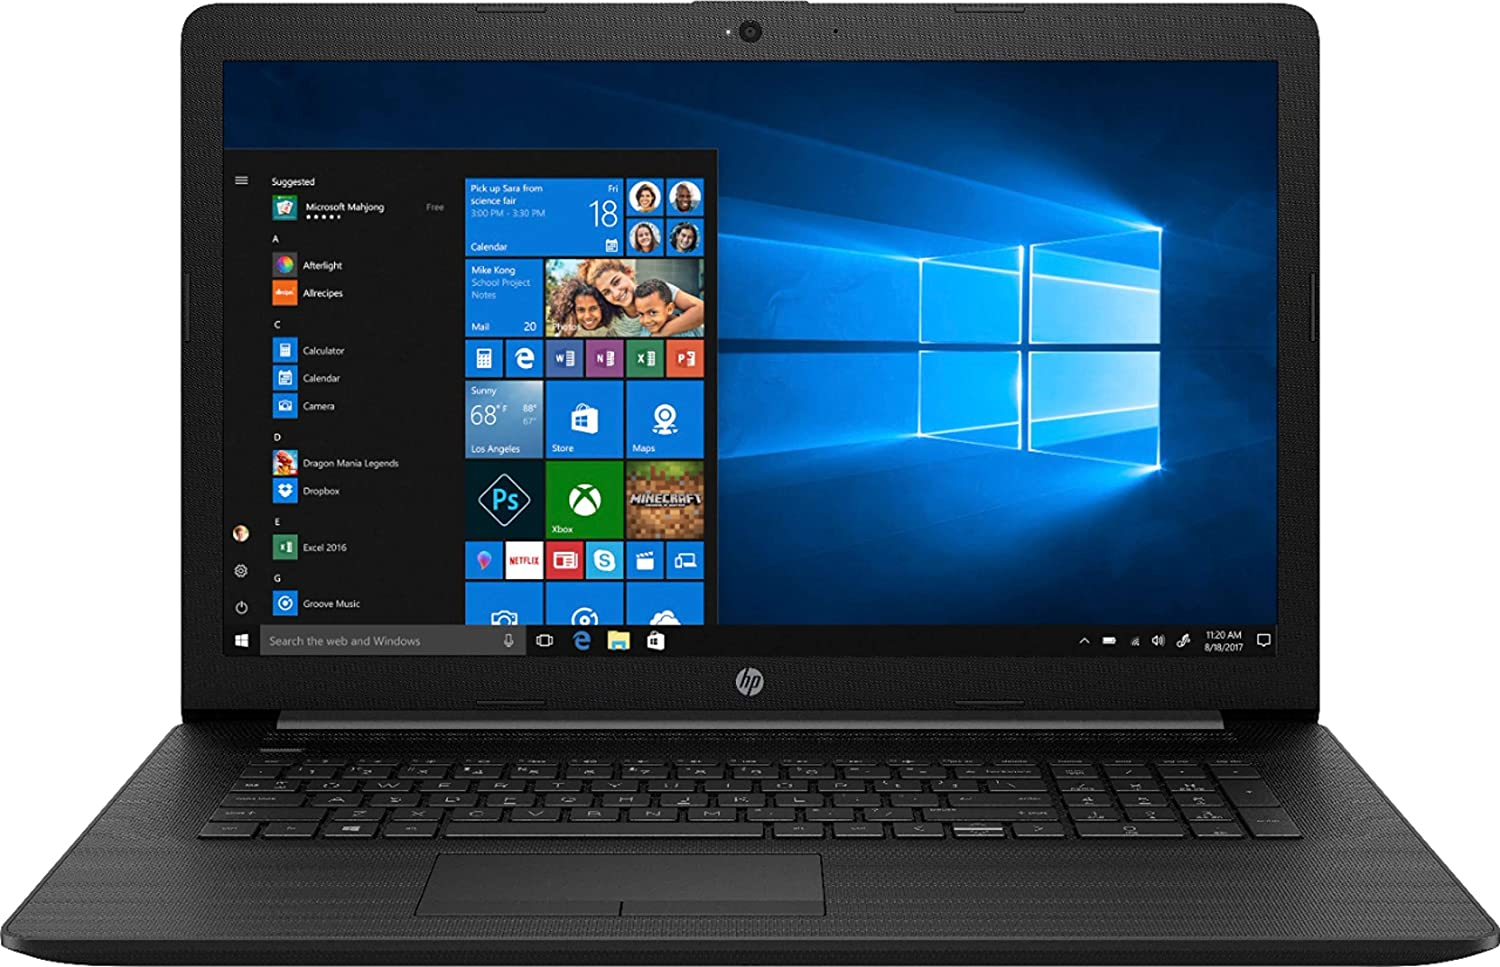 HP (17-BY1053DX) 17.3 Laptop - Core i5-8265U - 8GB Memory - 256GB Solid State Drive - Jet Black/Maglia Pattern (Renewed)